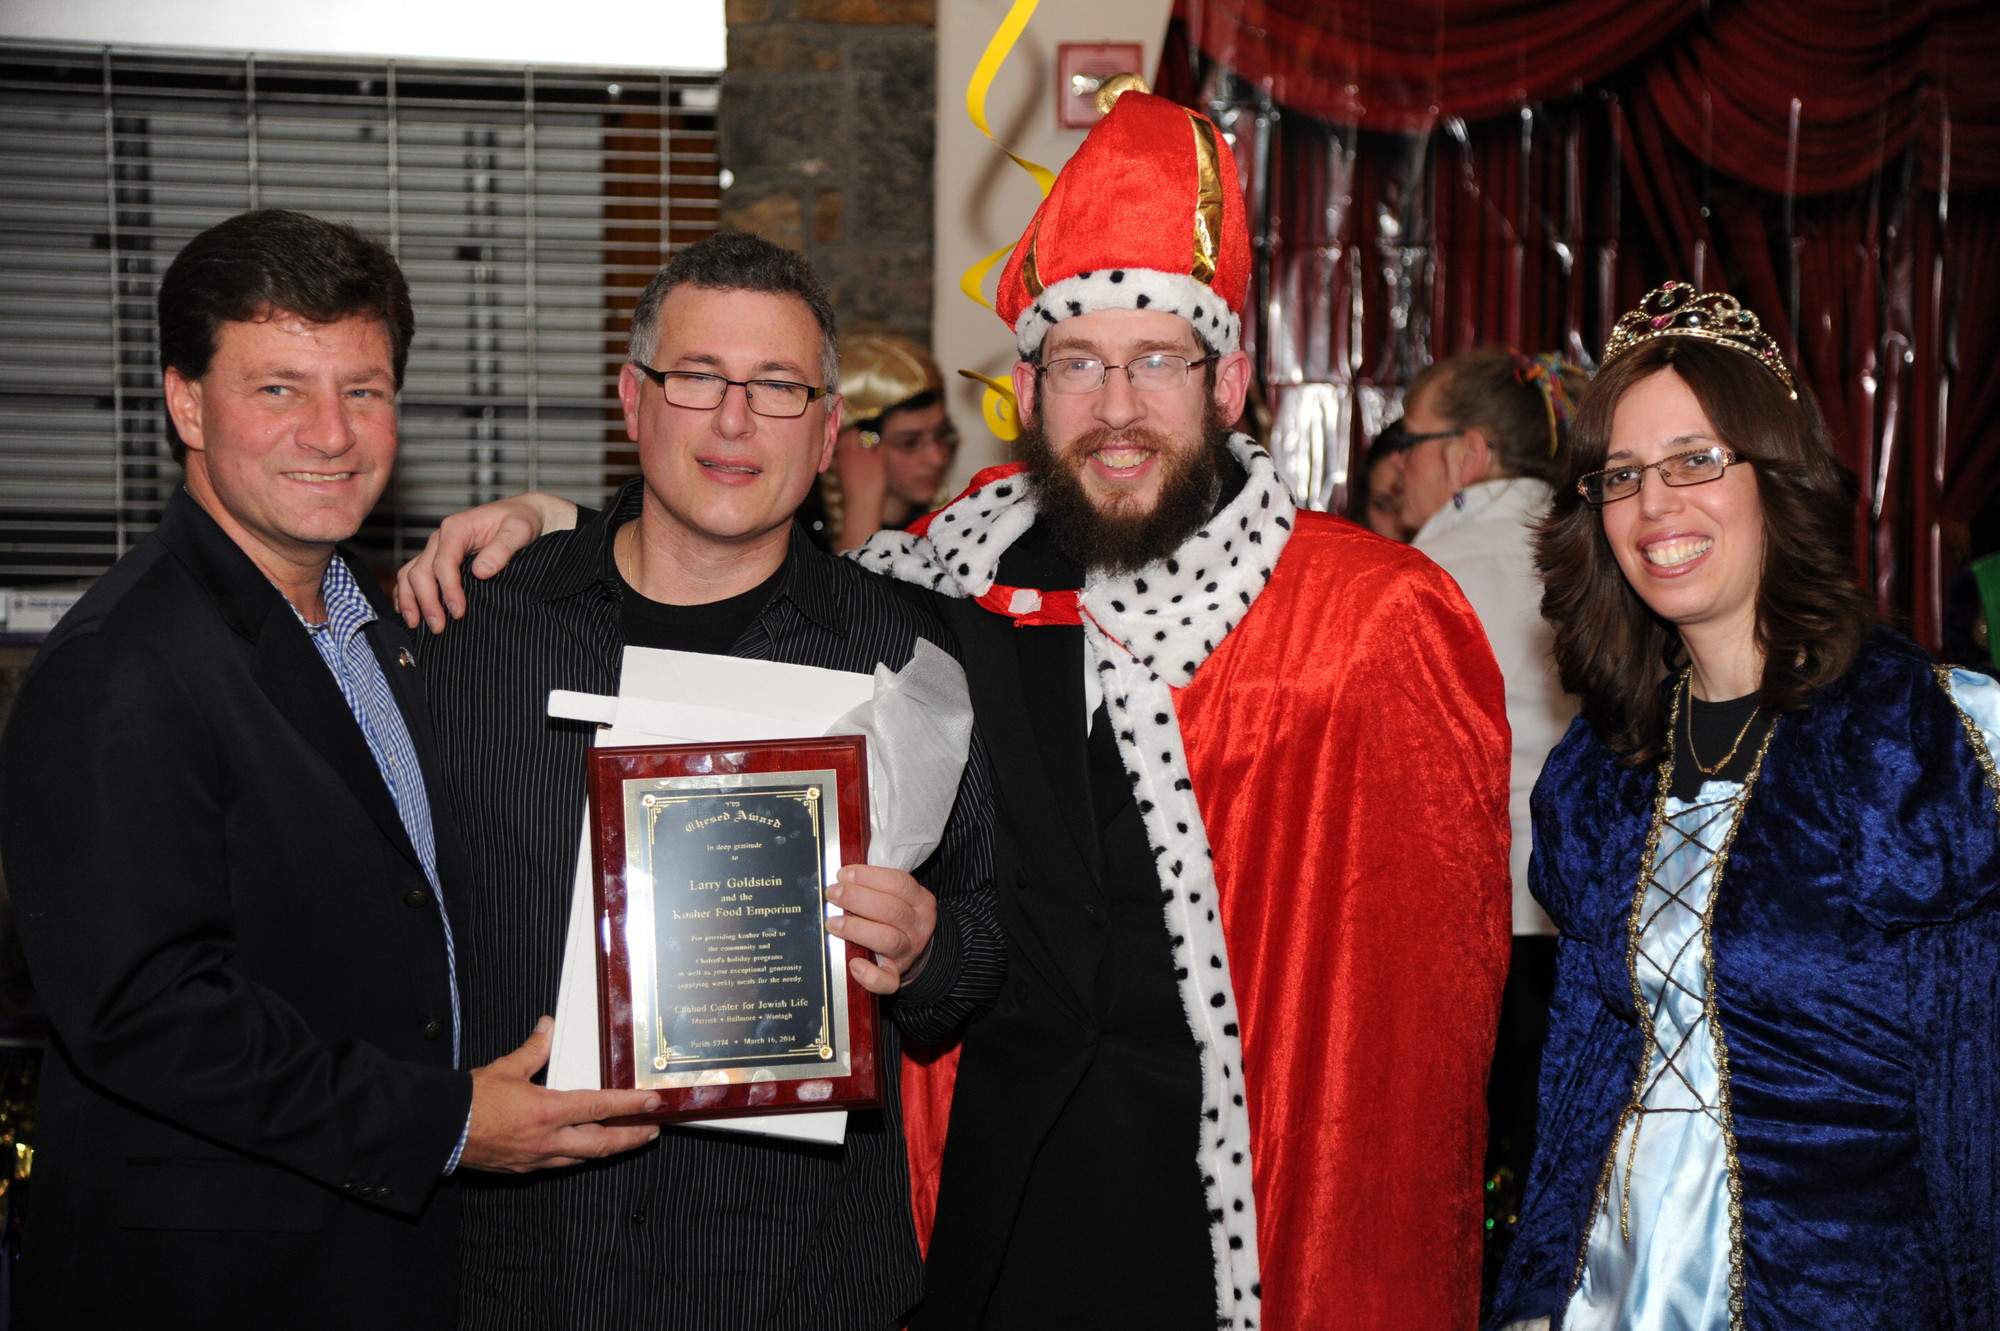 Legislator Dave Denenberg, Rabbi Shimon Kramer and Chanie Kramer presented Larry Goldstein of Plainview's Kosher Food Emporium with an award for donating food to Chabad holiday programs.